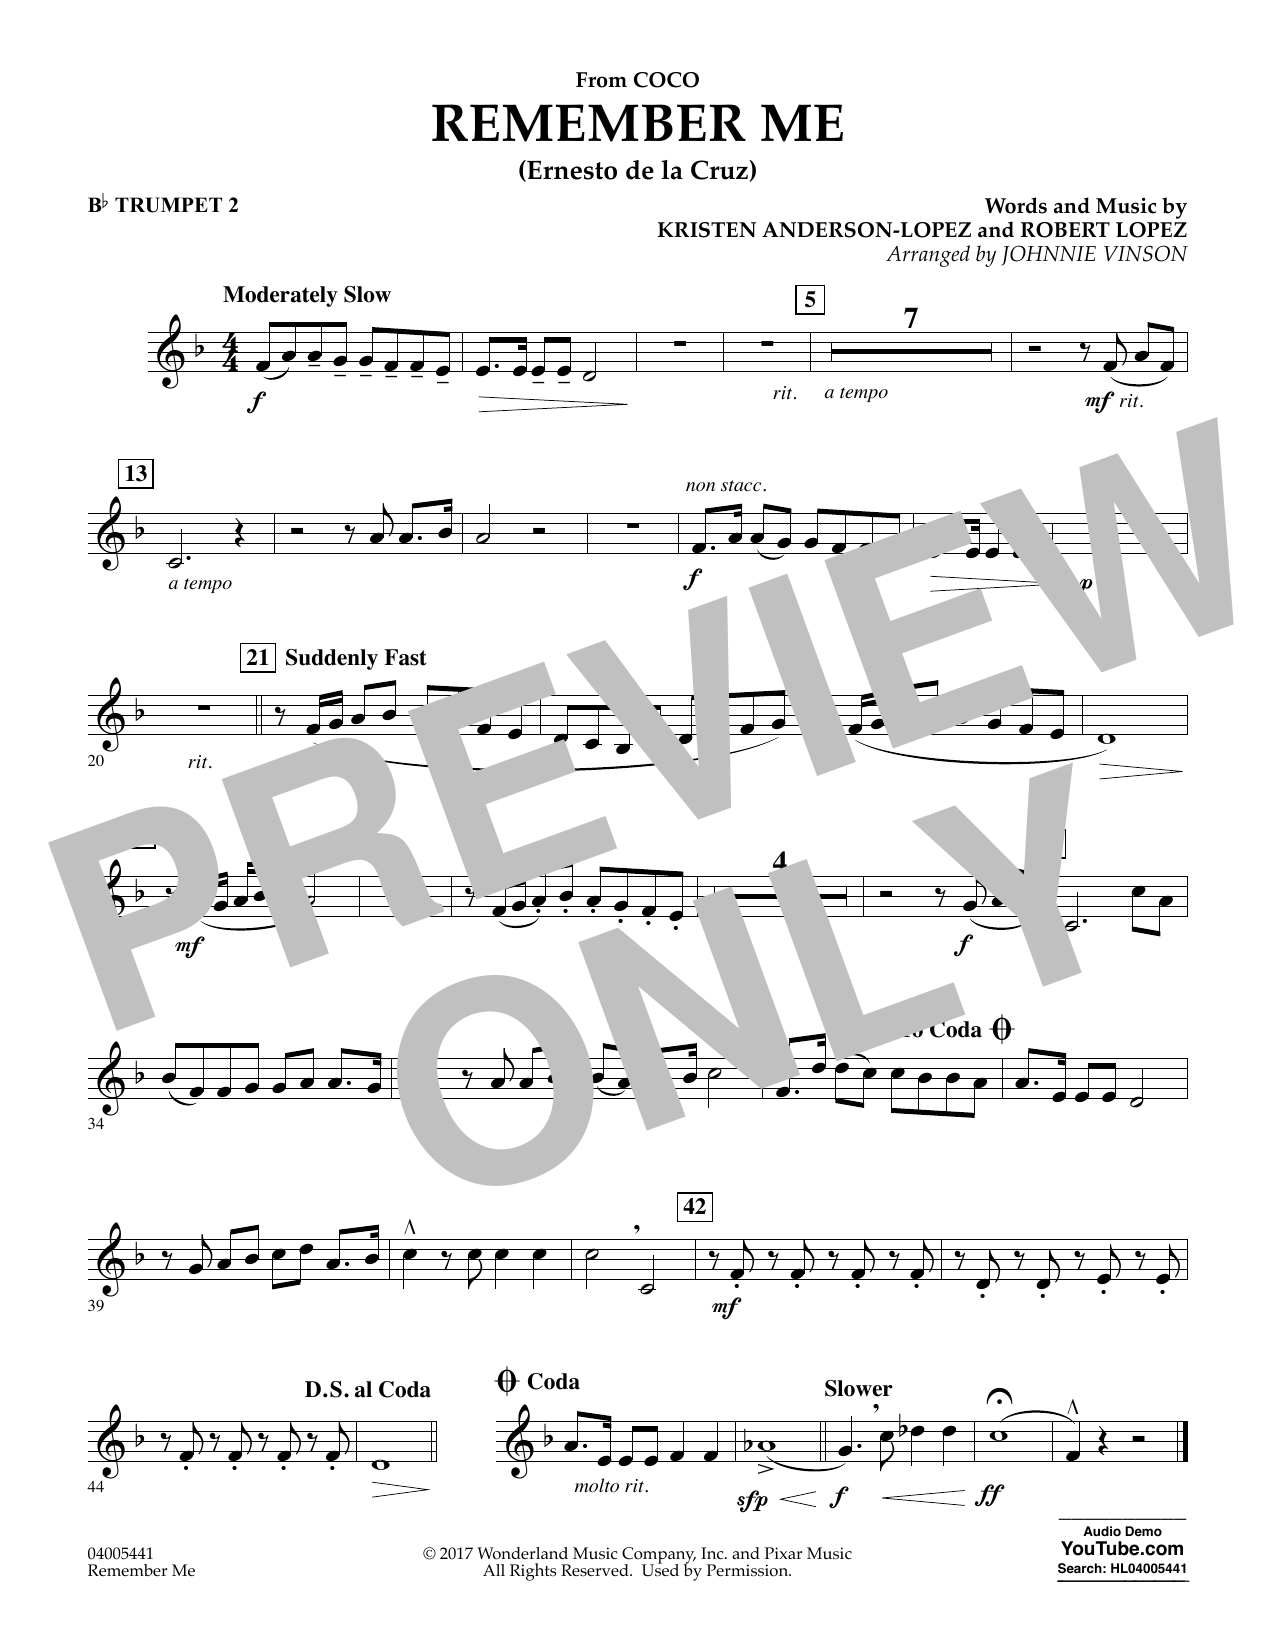 Kristen Anderson-Lopez & Robert Lopez Remember Me (from Coco) (arr. Johnnie Vinson) - Bb Trumpet 2 sheet music notes and chords. Download Printable PDF.